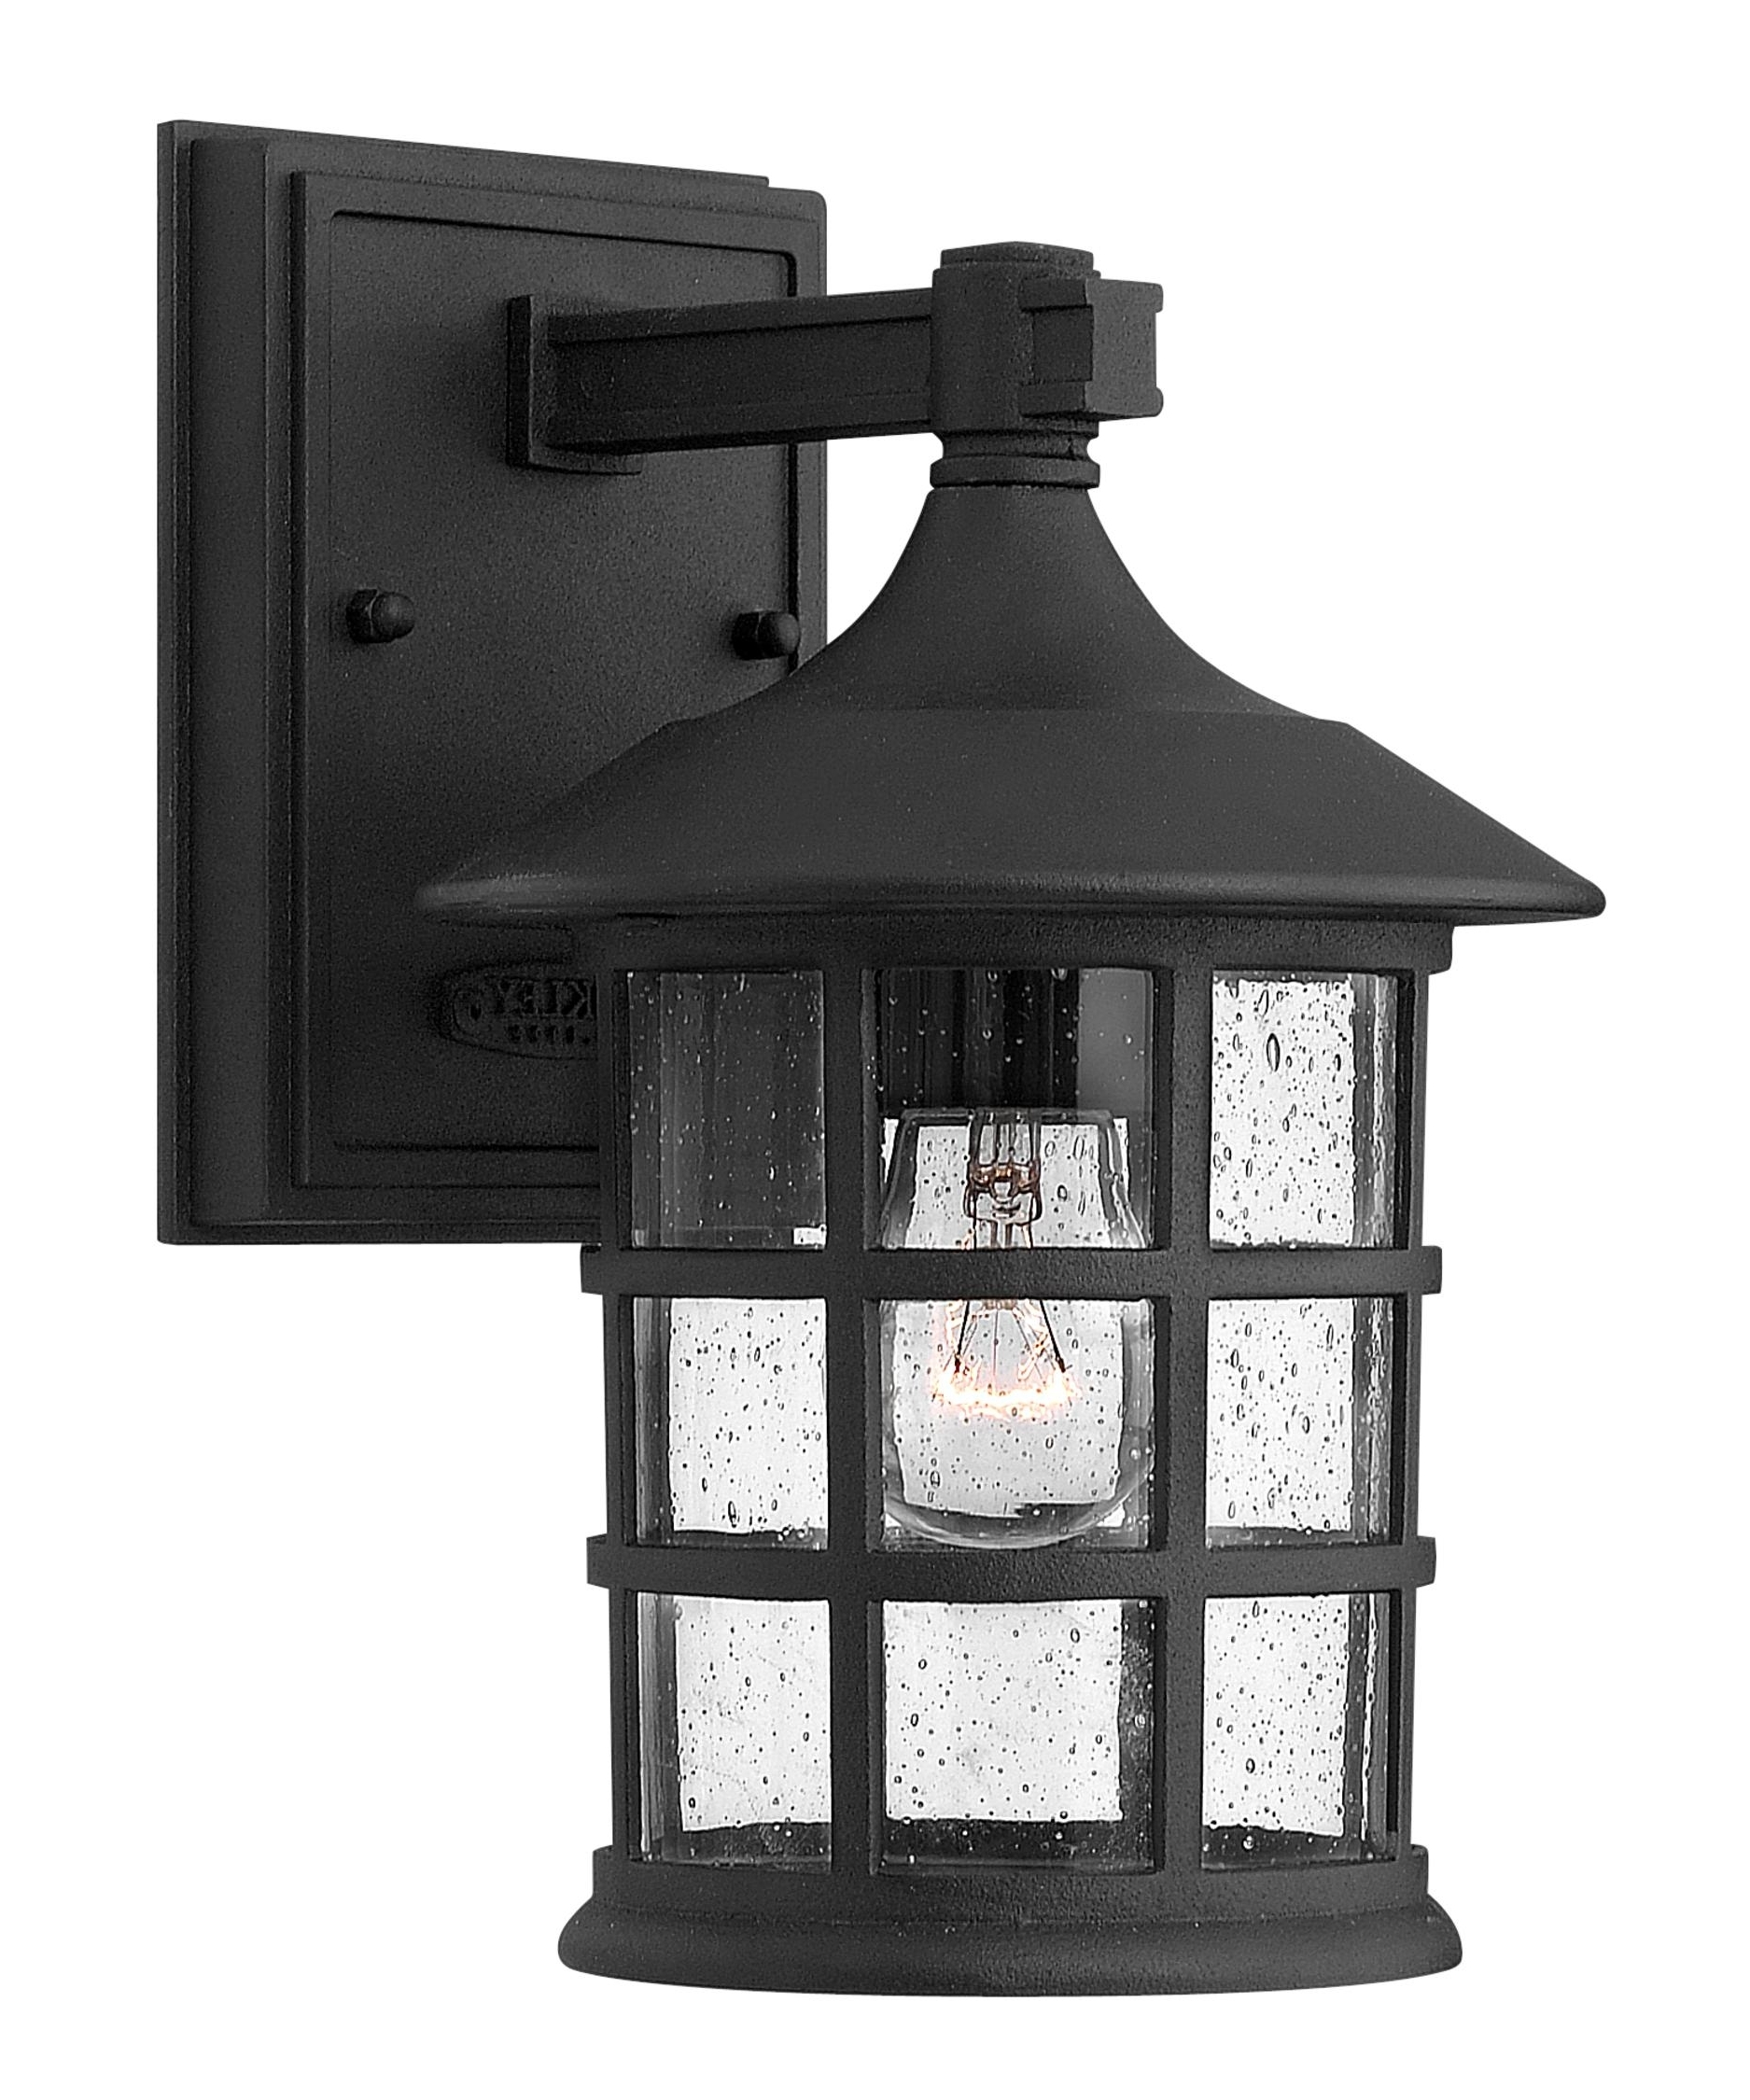 Mini Wall Mount Hinkley Lighting Pertaining To Latest Hinkley Lighting 1800 Freeport 6 Inch Wide 1 Light Outdoor Wall (View 9 of 20)